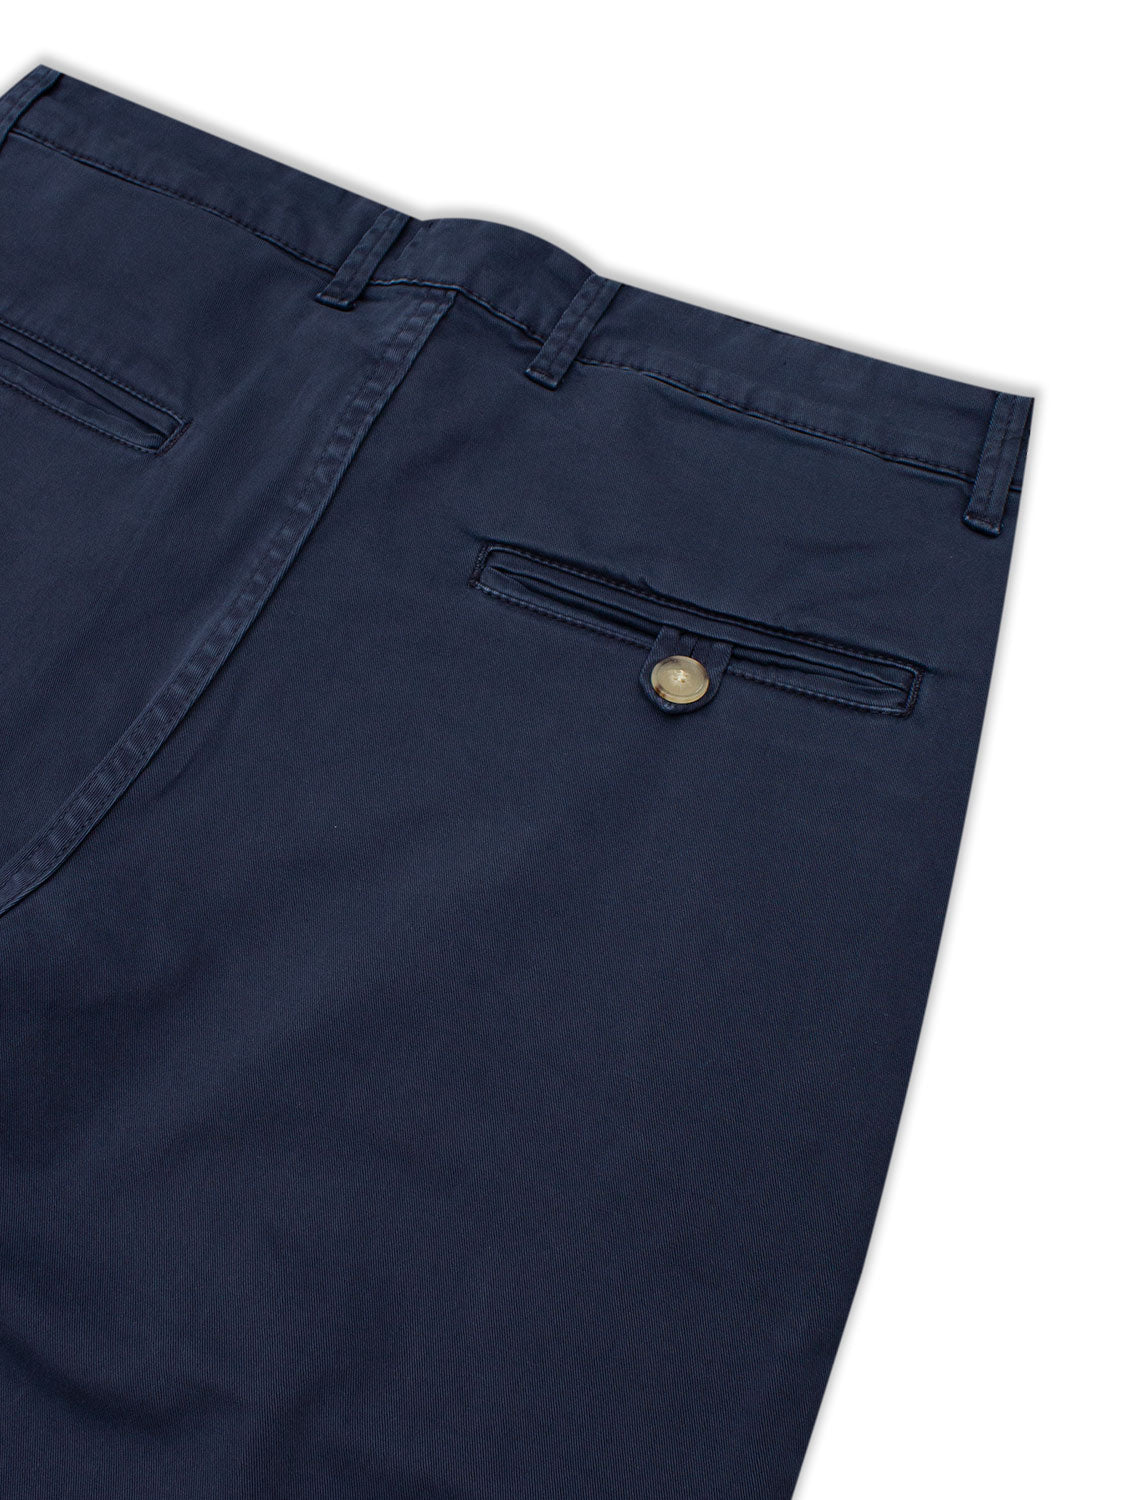 STANDARD CHINO FRENCH BLUE